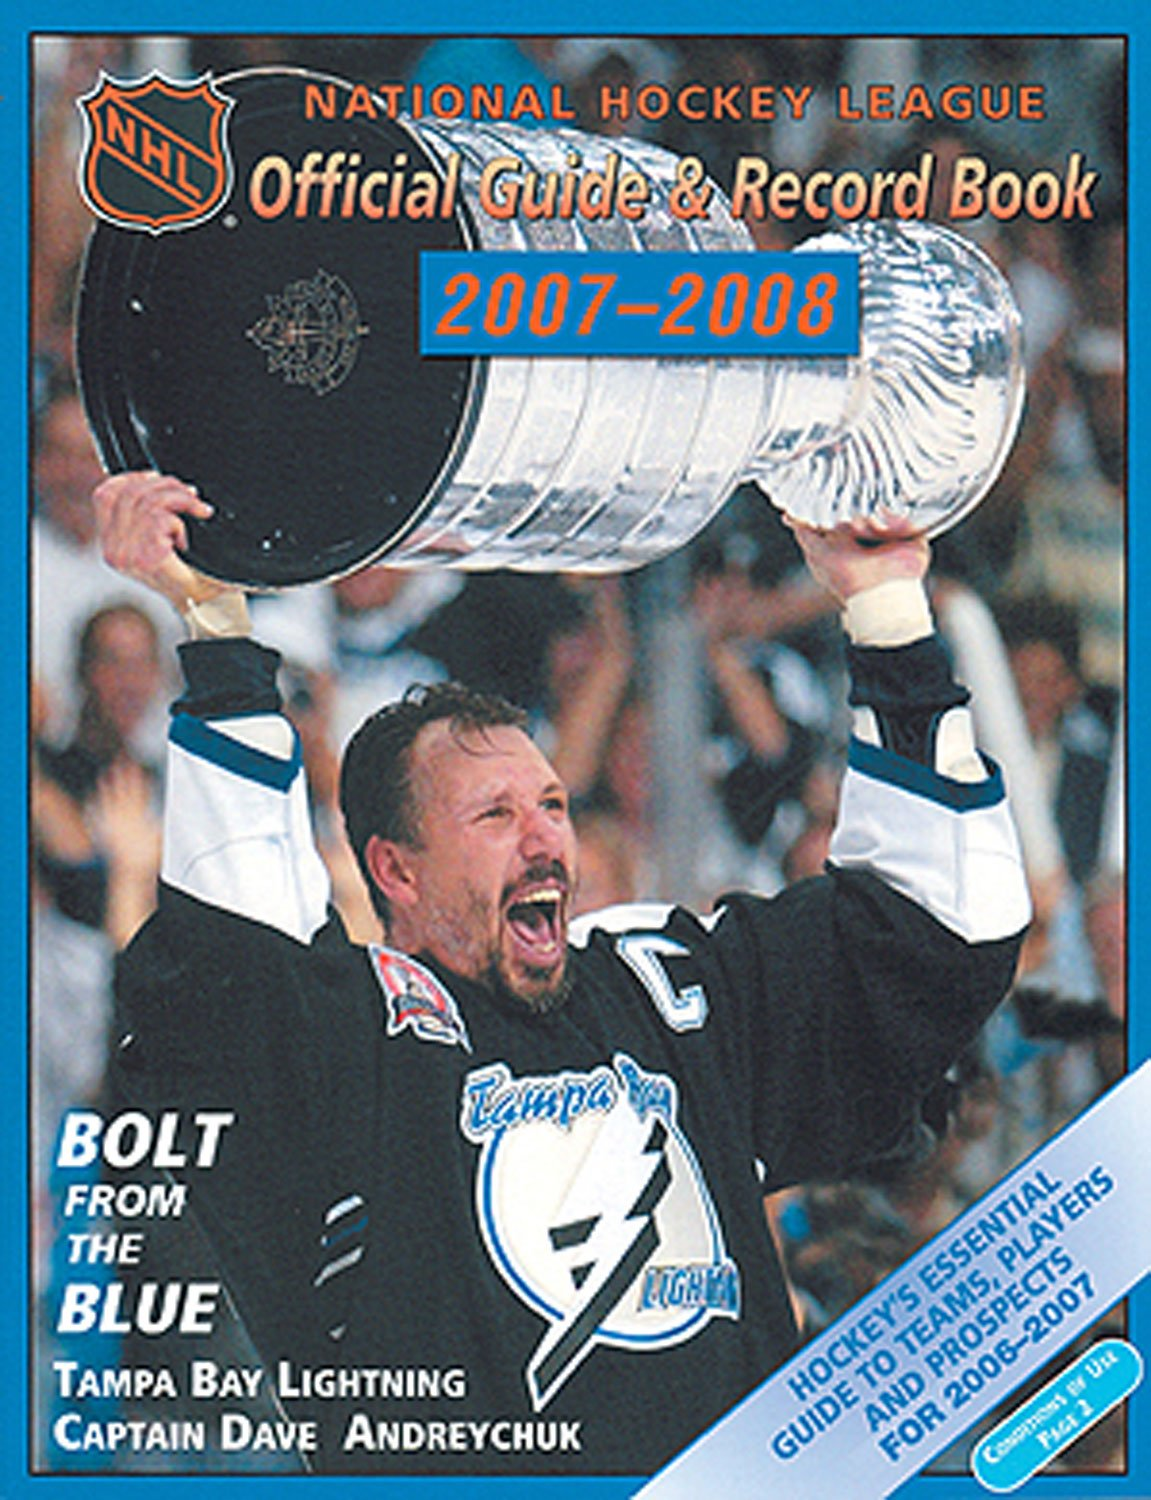 NHL Official Guide and Record Book (NATIONAL HOCKEY LEAGUE OFFICIAL GUIDE AND RECORD BOOK)